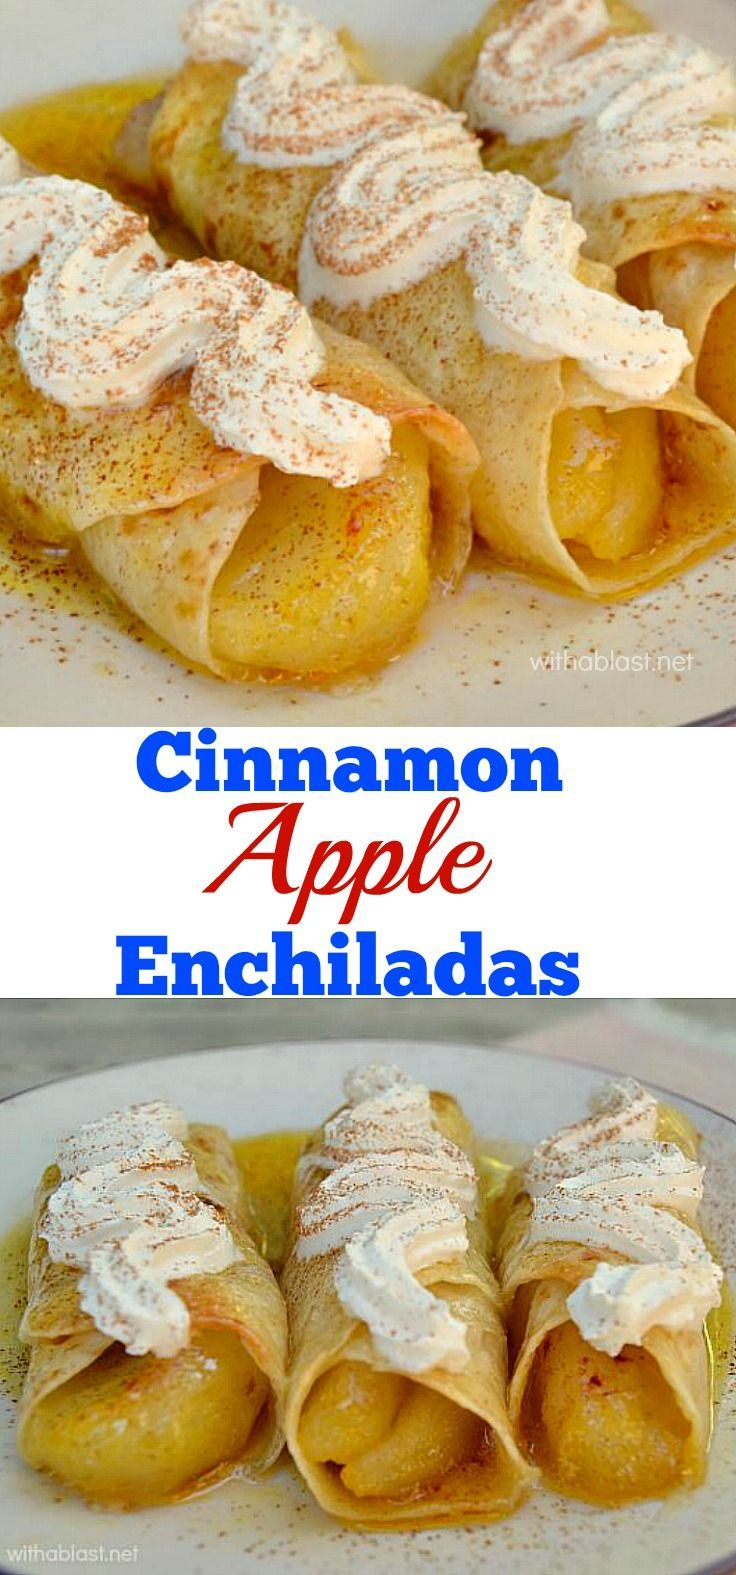 These cinnamon apple enchiladas are drenched in syrup with a these cinnamon apple enchiladas are drenched in syrup with a slightly crisp top so easy forumfinder Images